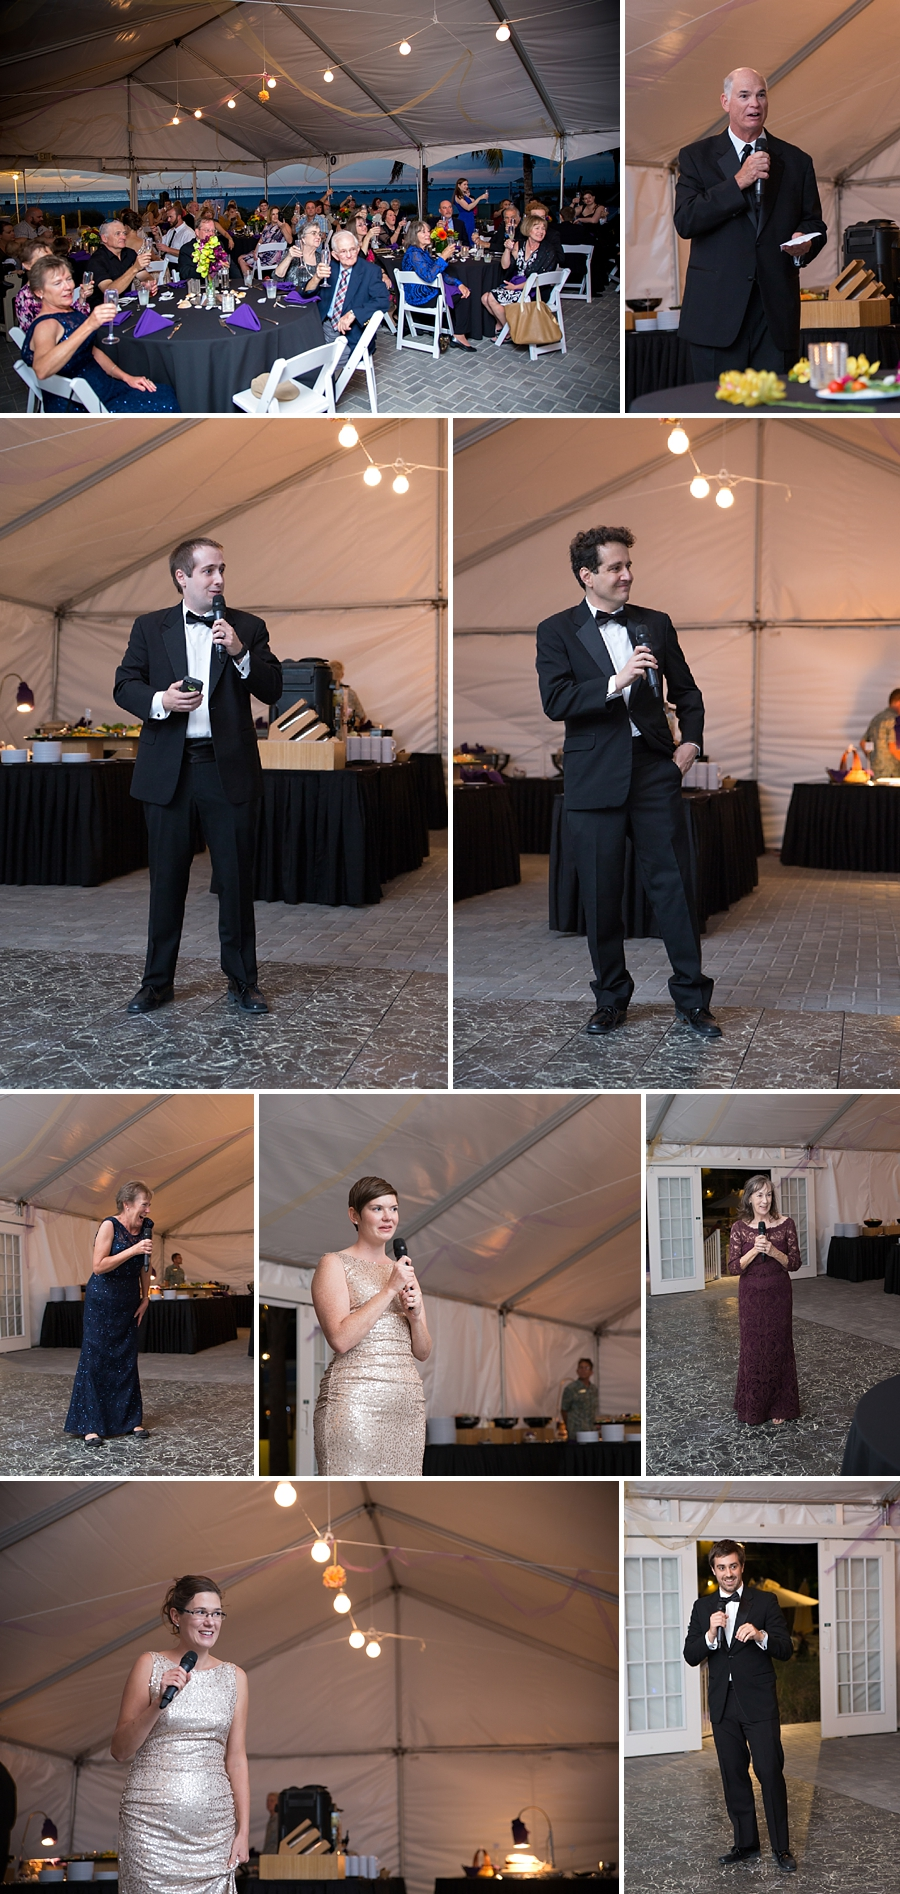 speeches at the wedding reception